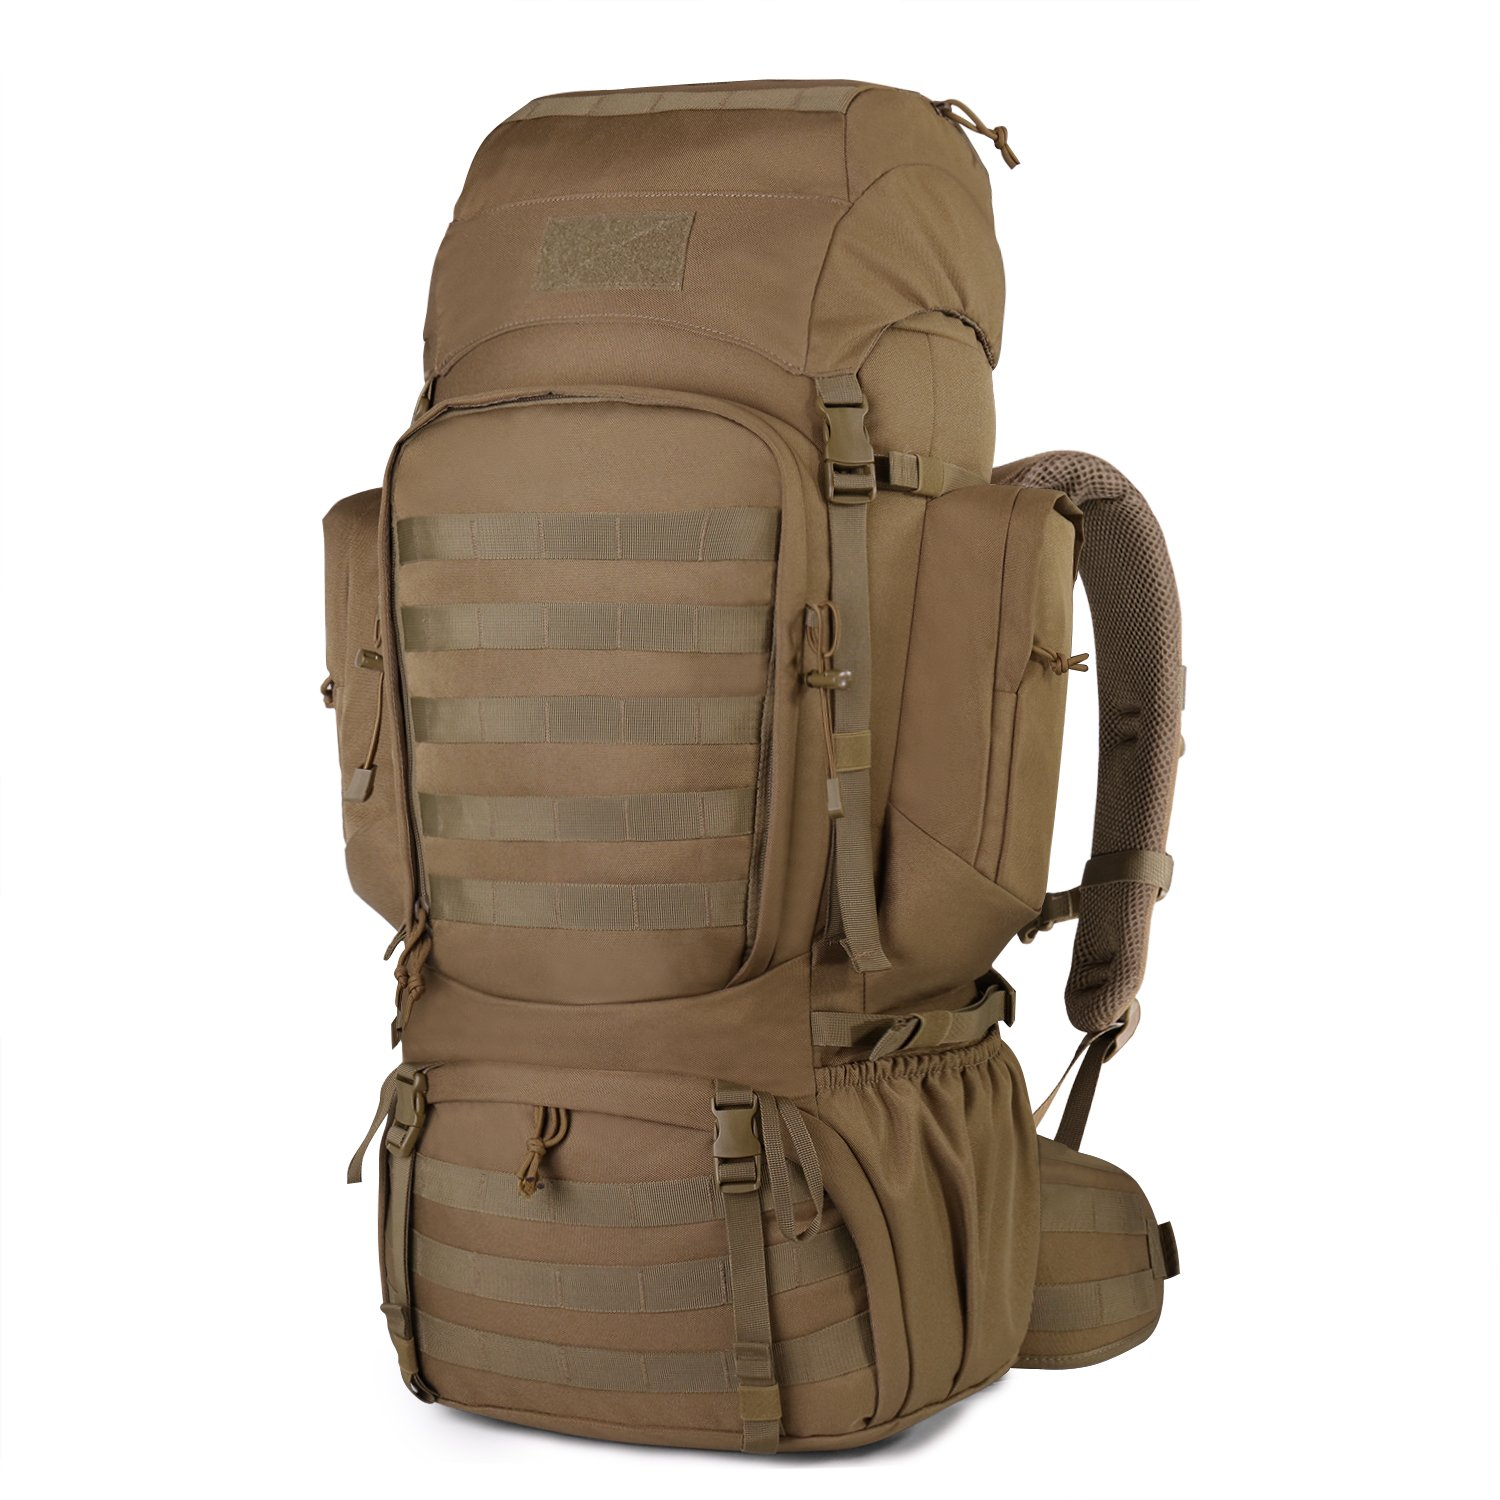 Mardingtop 60L Internal Frame Backpack Tactical Military Molle Rucksack for Camping Hiking Traveling with Rain Cover, YKK Zipper YKK Buckle Khaki-6226 by Mardingtop